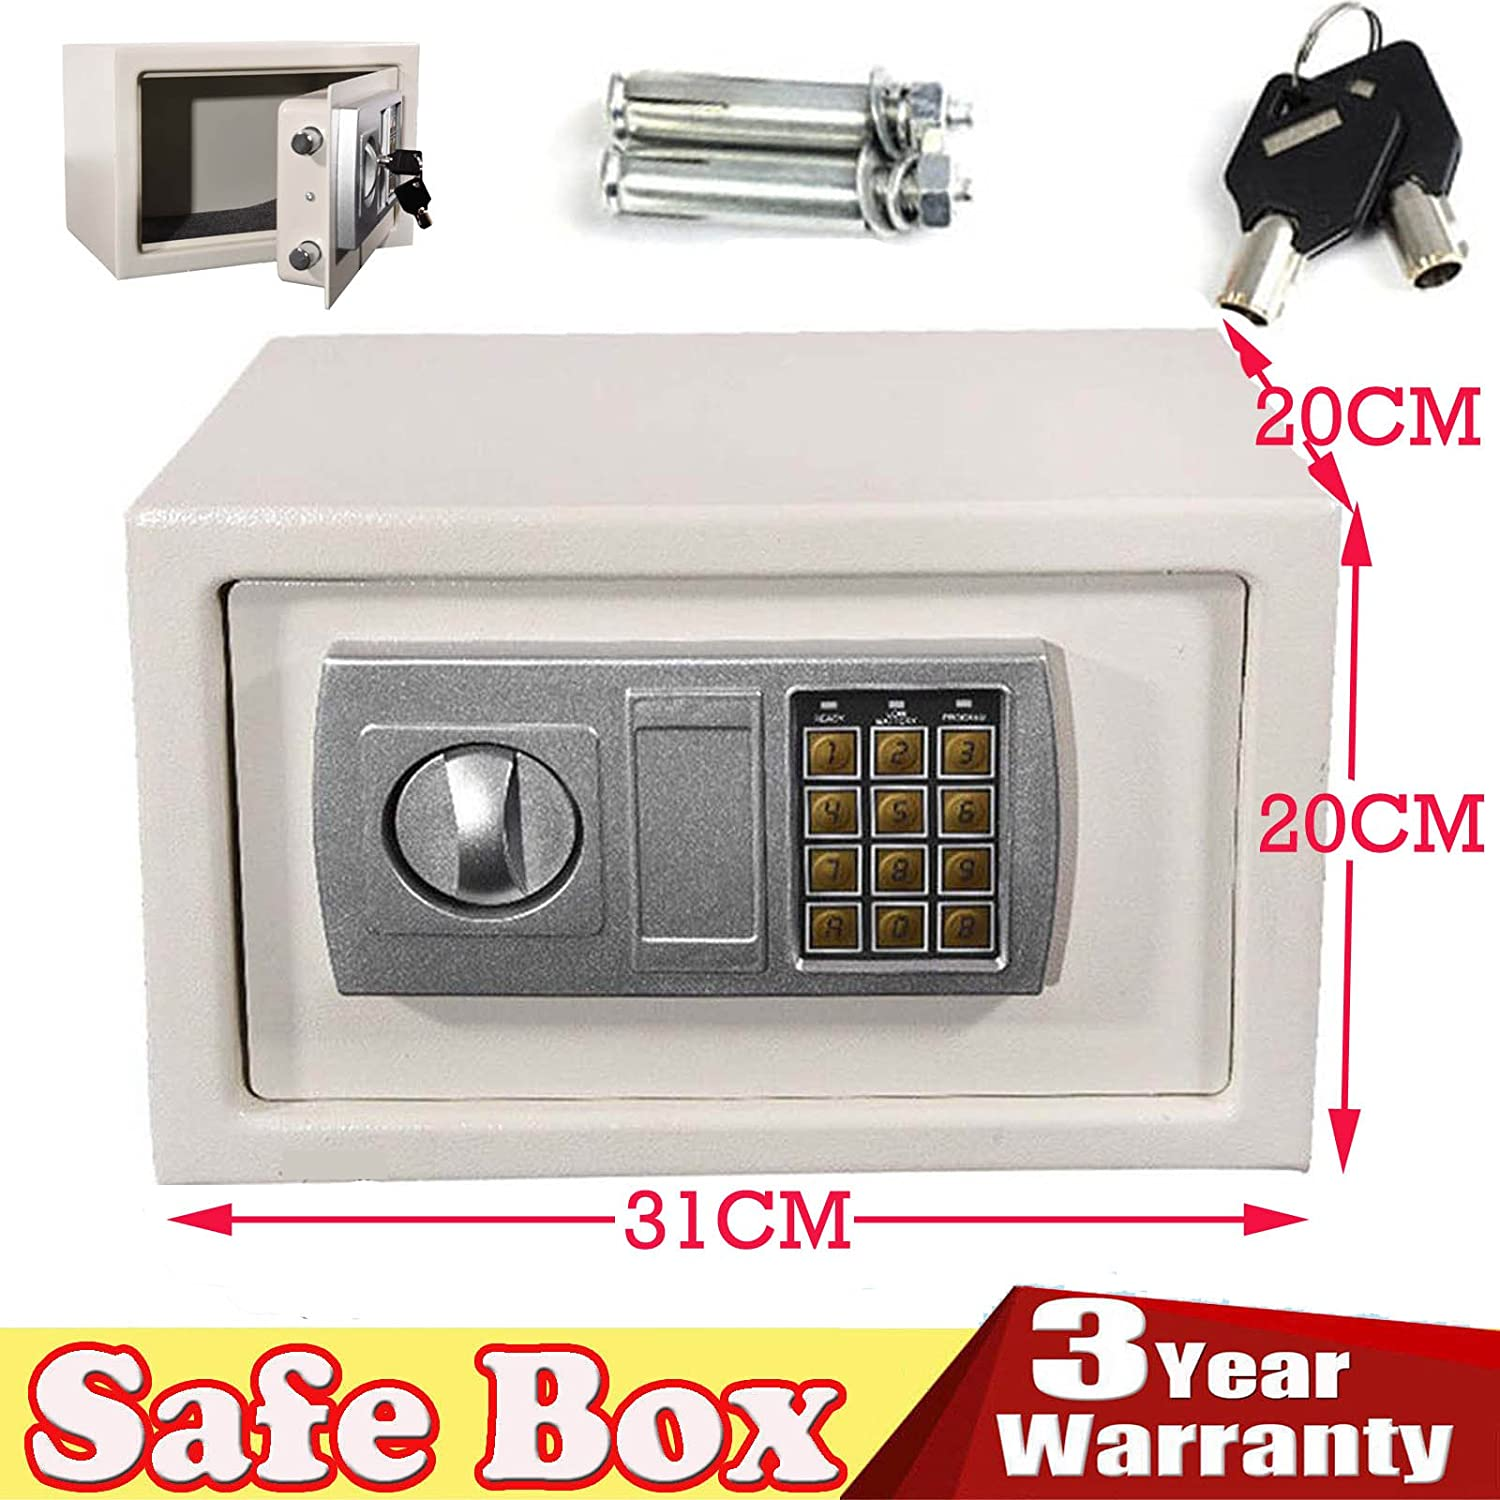 8.5L Safe Electronic Security Box Digital Password /& Keys Combination Lock for Home Office Hotel Antitheft Wall Mounted Steel Safety Box Storage Cash Money Jewelry White